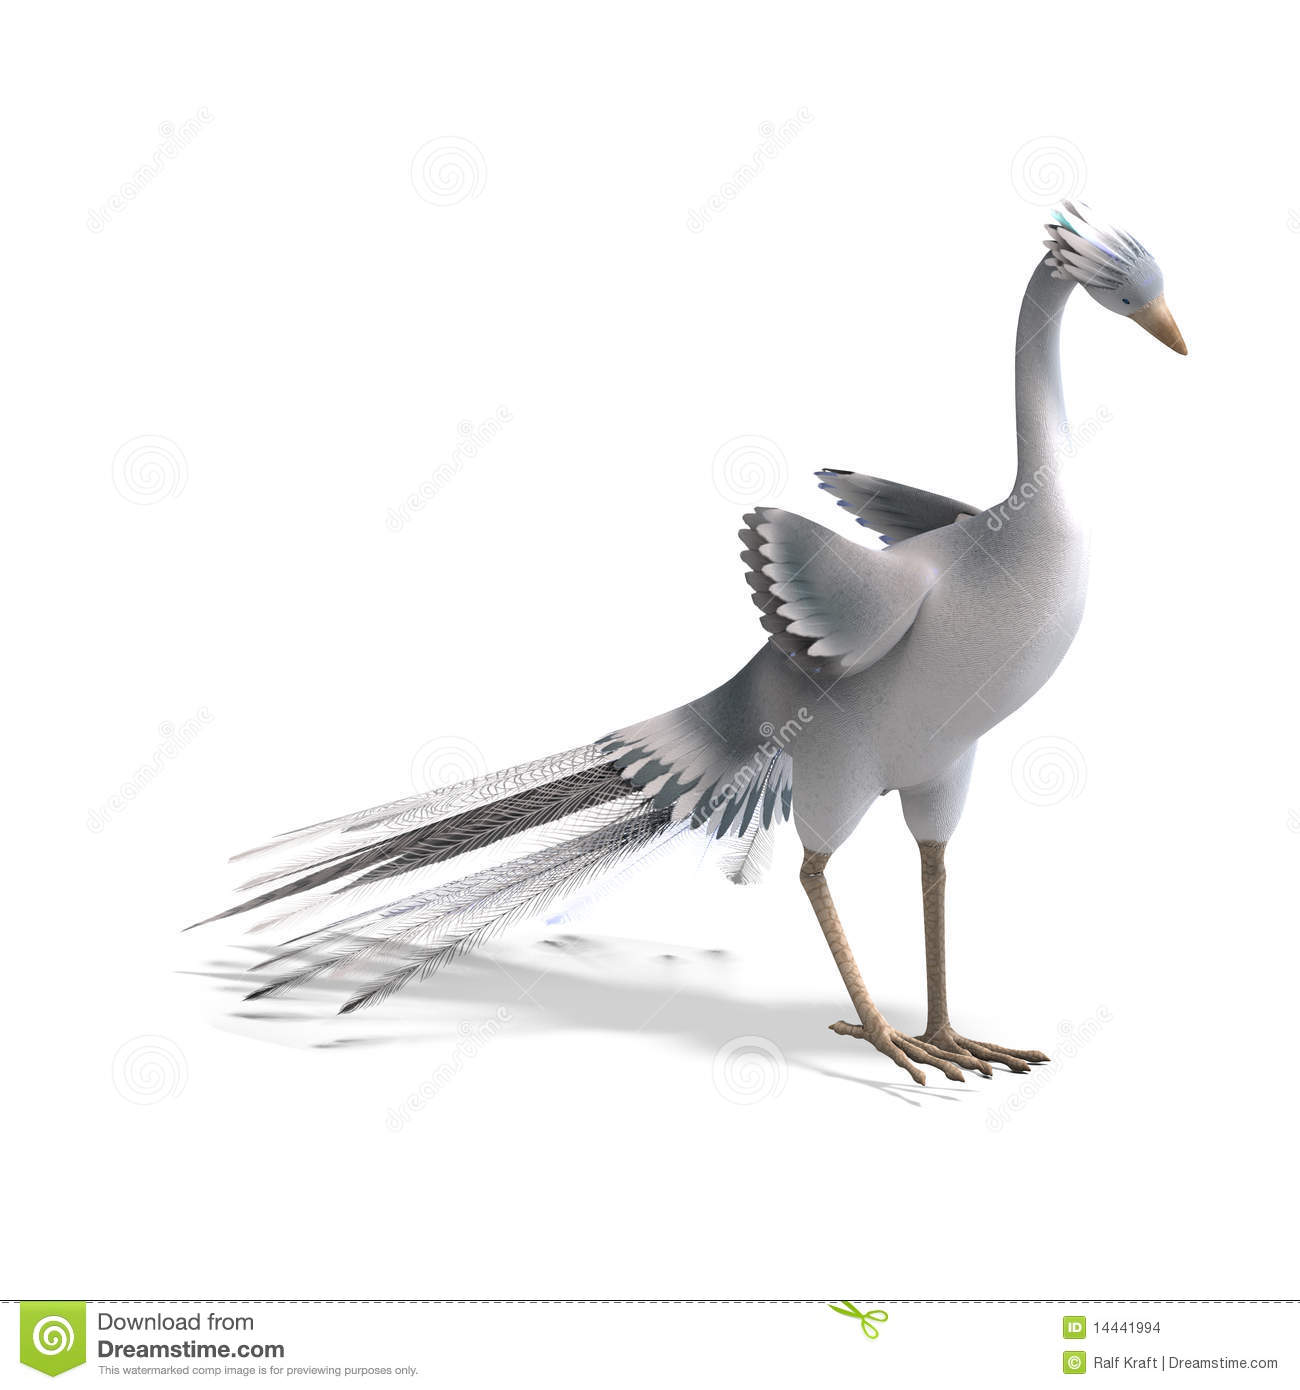 White fantasy bird with beautiful feathers. 3D